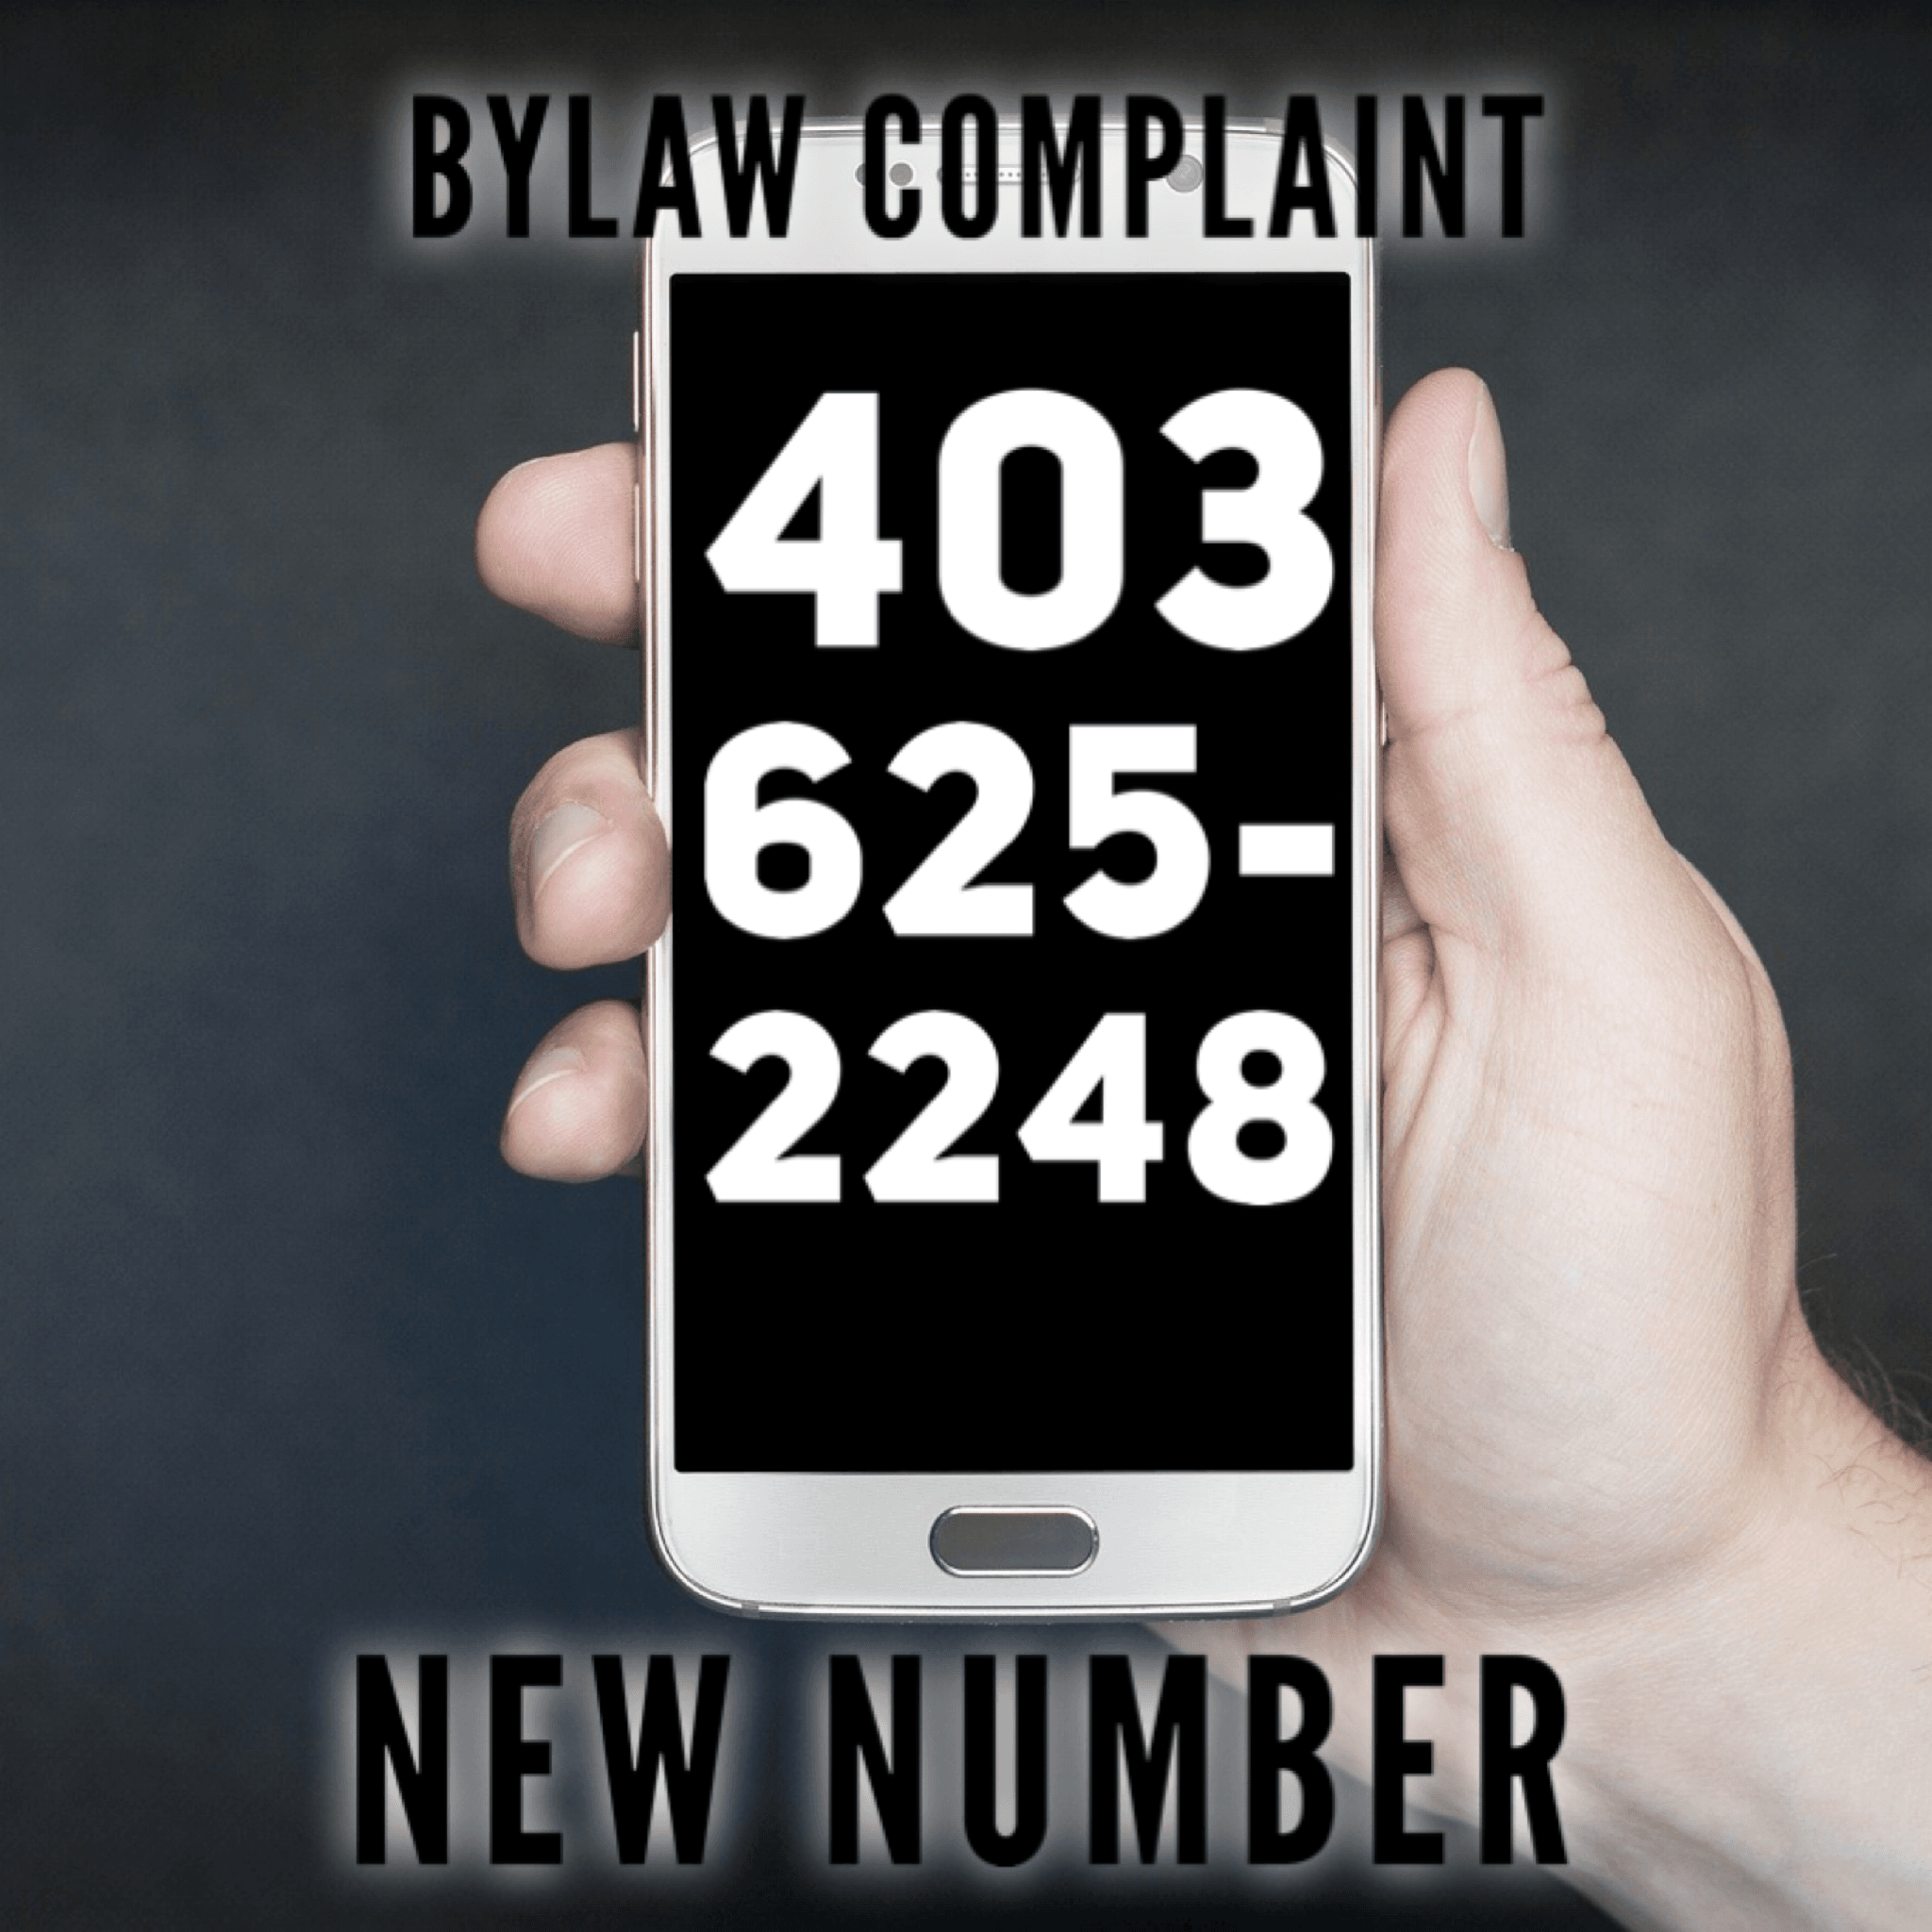 bylaw complaint new number